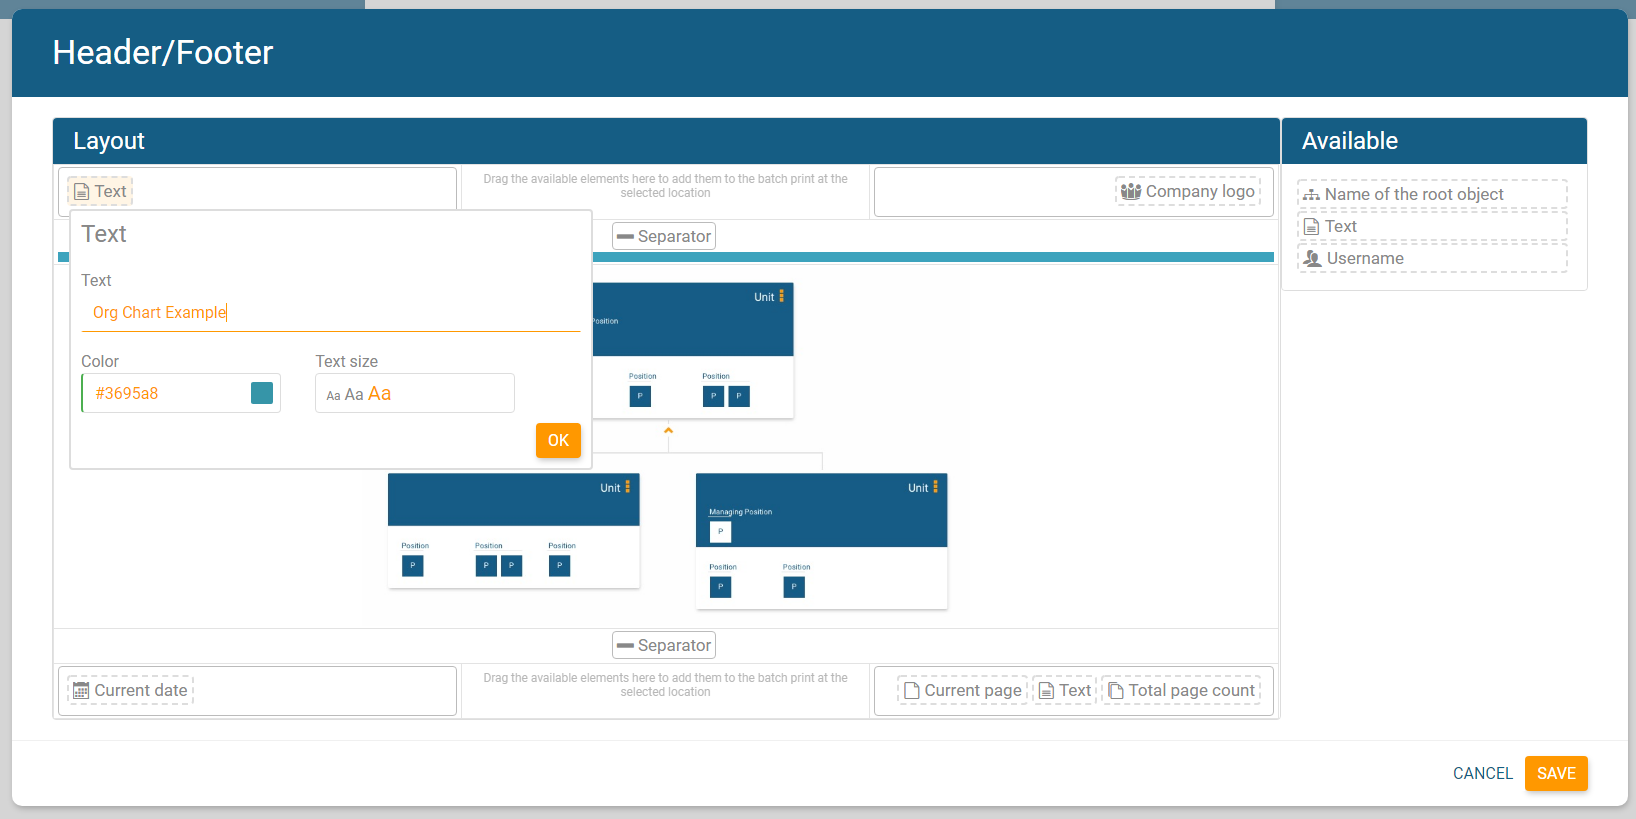 Add customized text fields to header/footer of your online org chart in orginio.